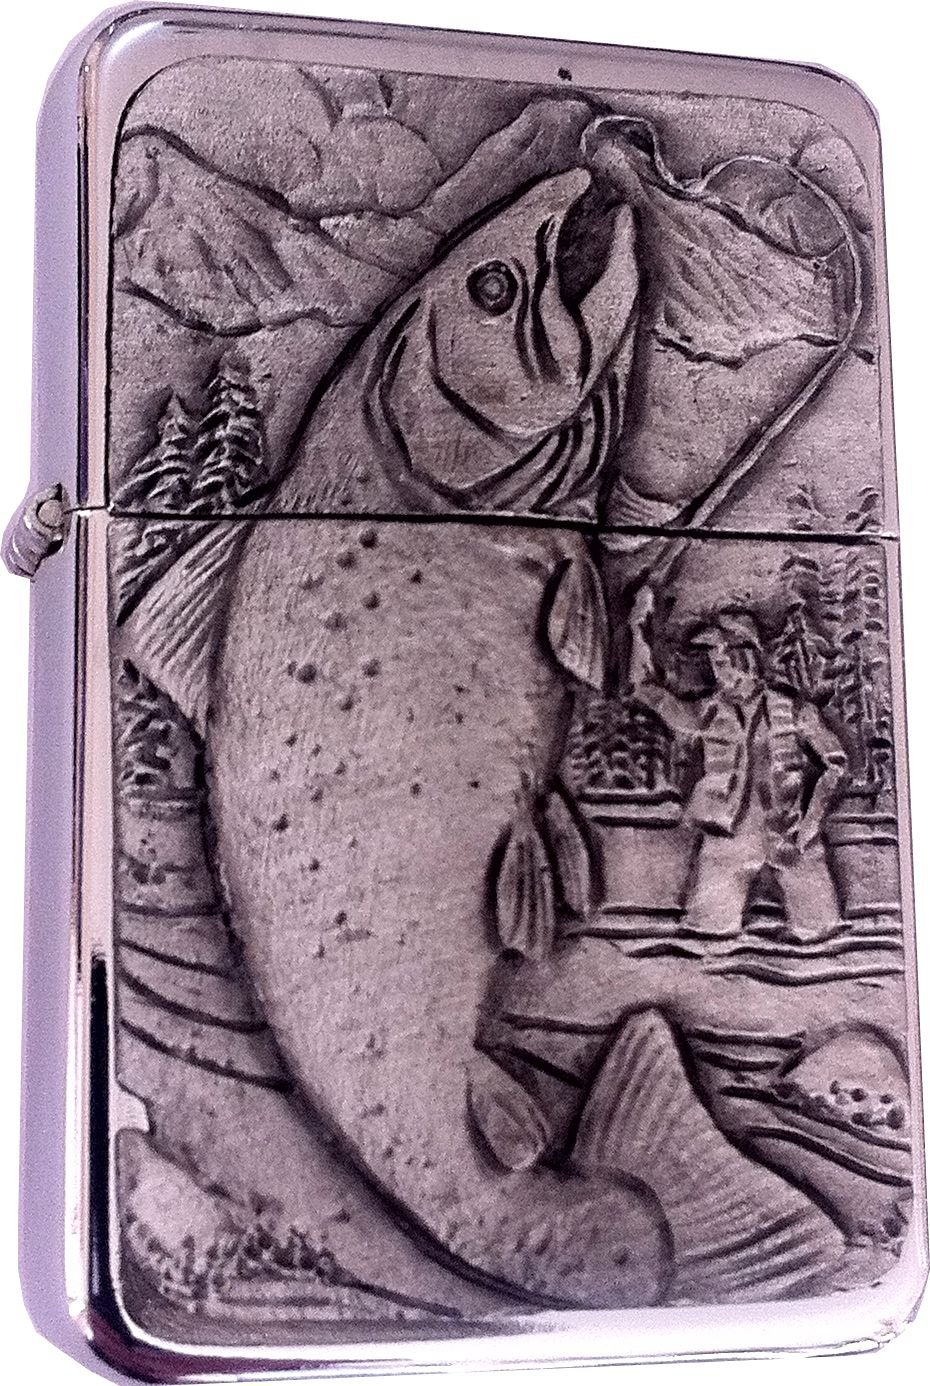 Chrome Star Lighter with Pewter Fishing/Fisherman Emblem, Complete with Metal Gift Tin Reallyusefulgifts